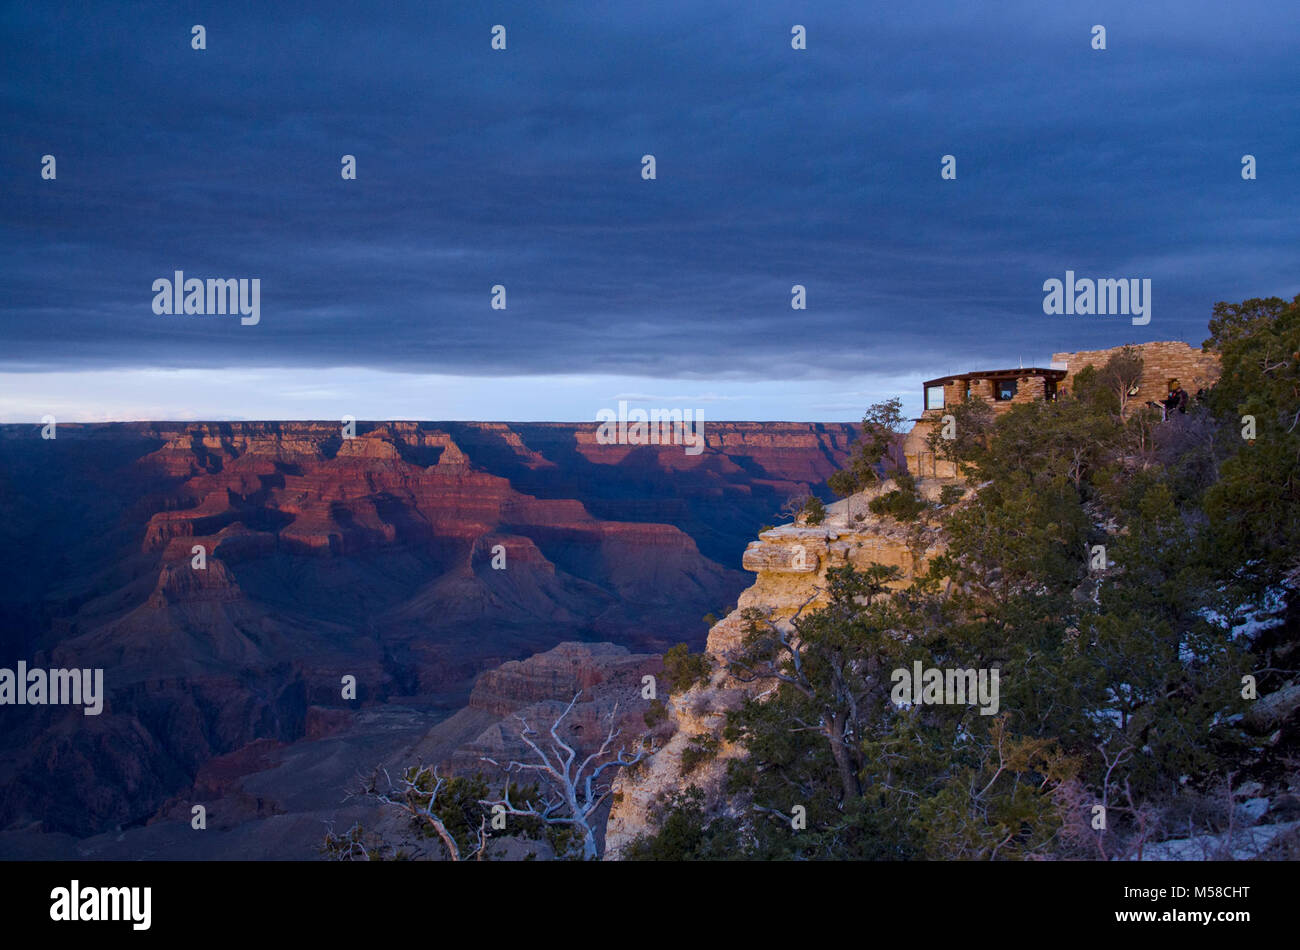 Grand Canyon National Park Yavapai Museum of Geology . Sunday, March 3, 2013 - a weak low pressure system brought - Stock Image